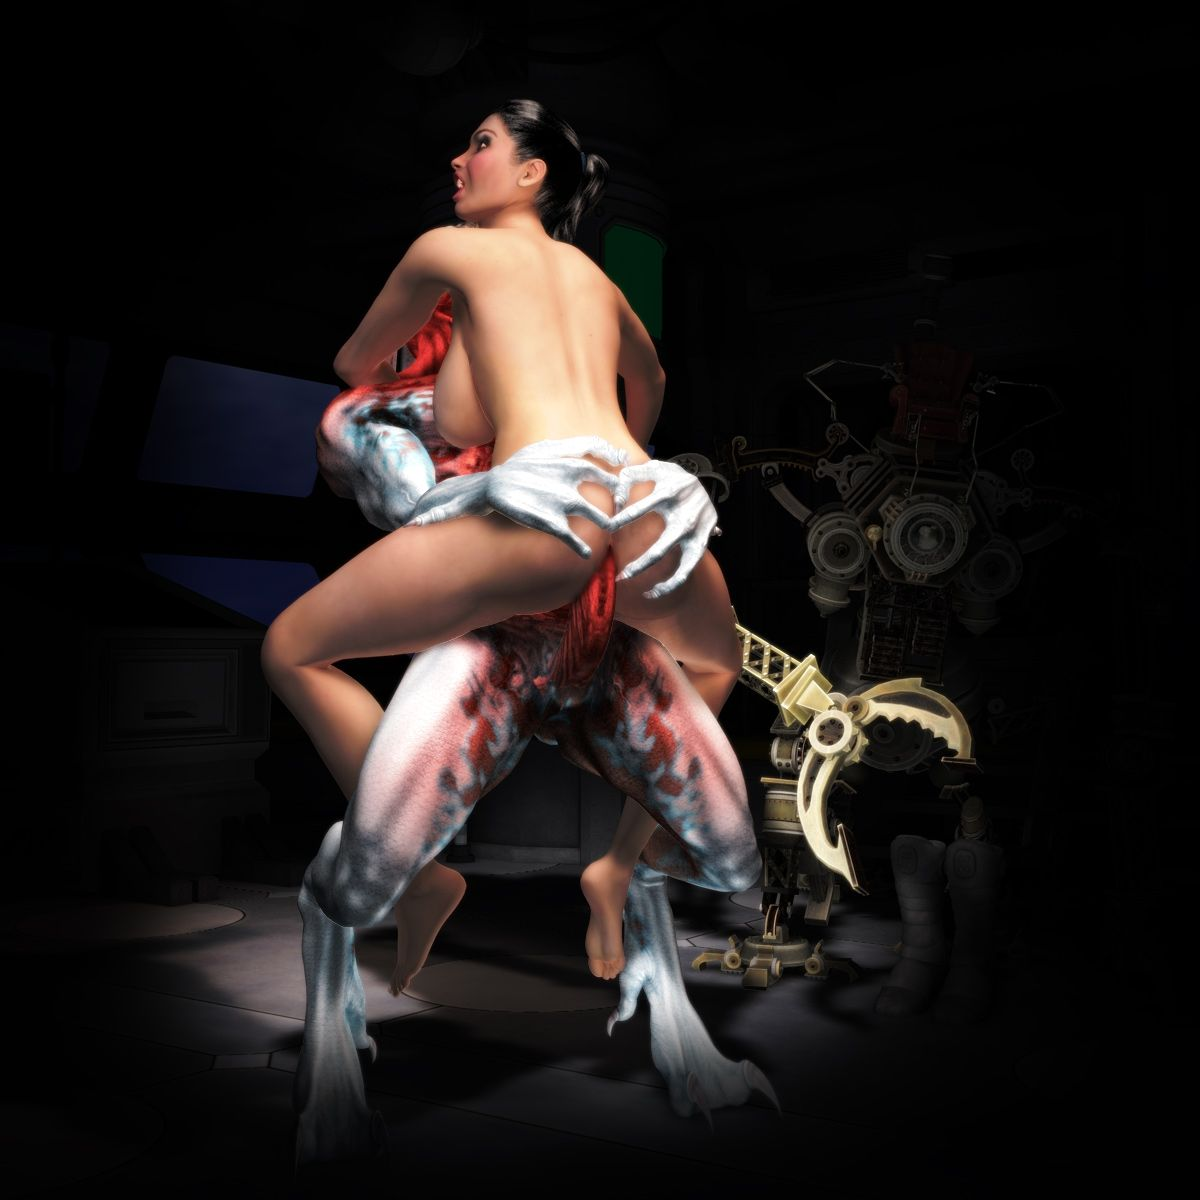 3d cg erotic monster wallpaper xxx bad singles